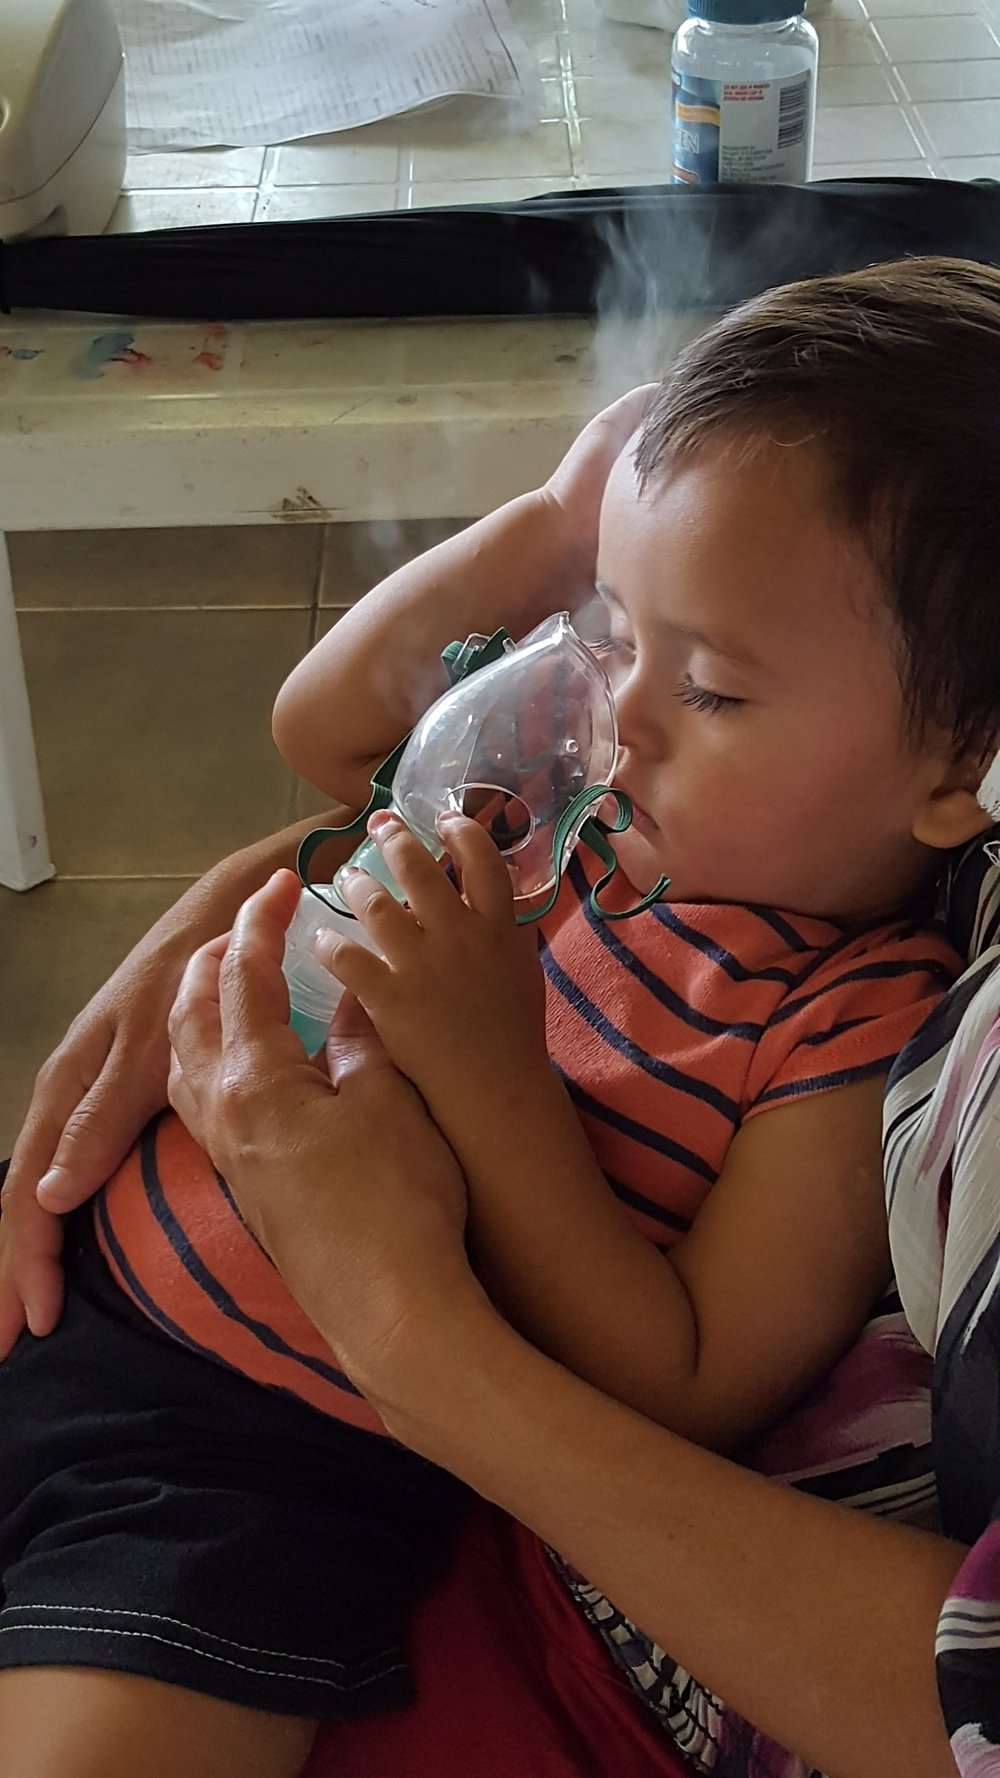 Nebulizer treatment for asthma.jpg